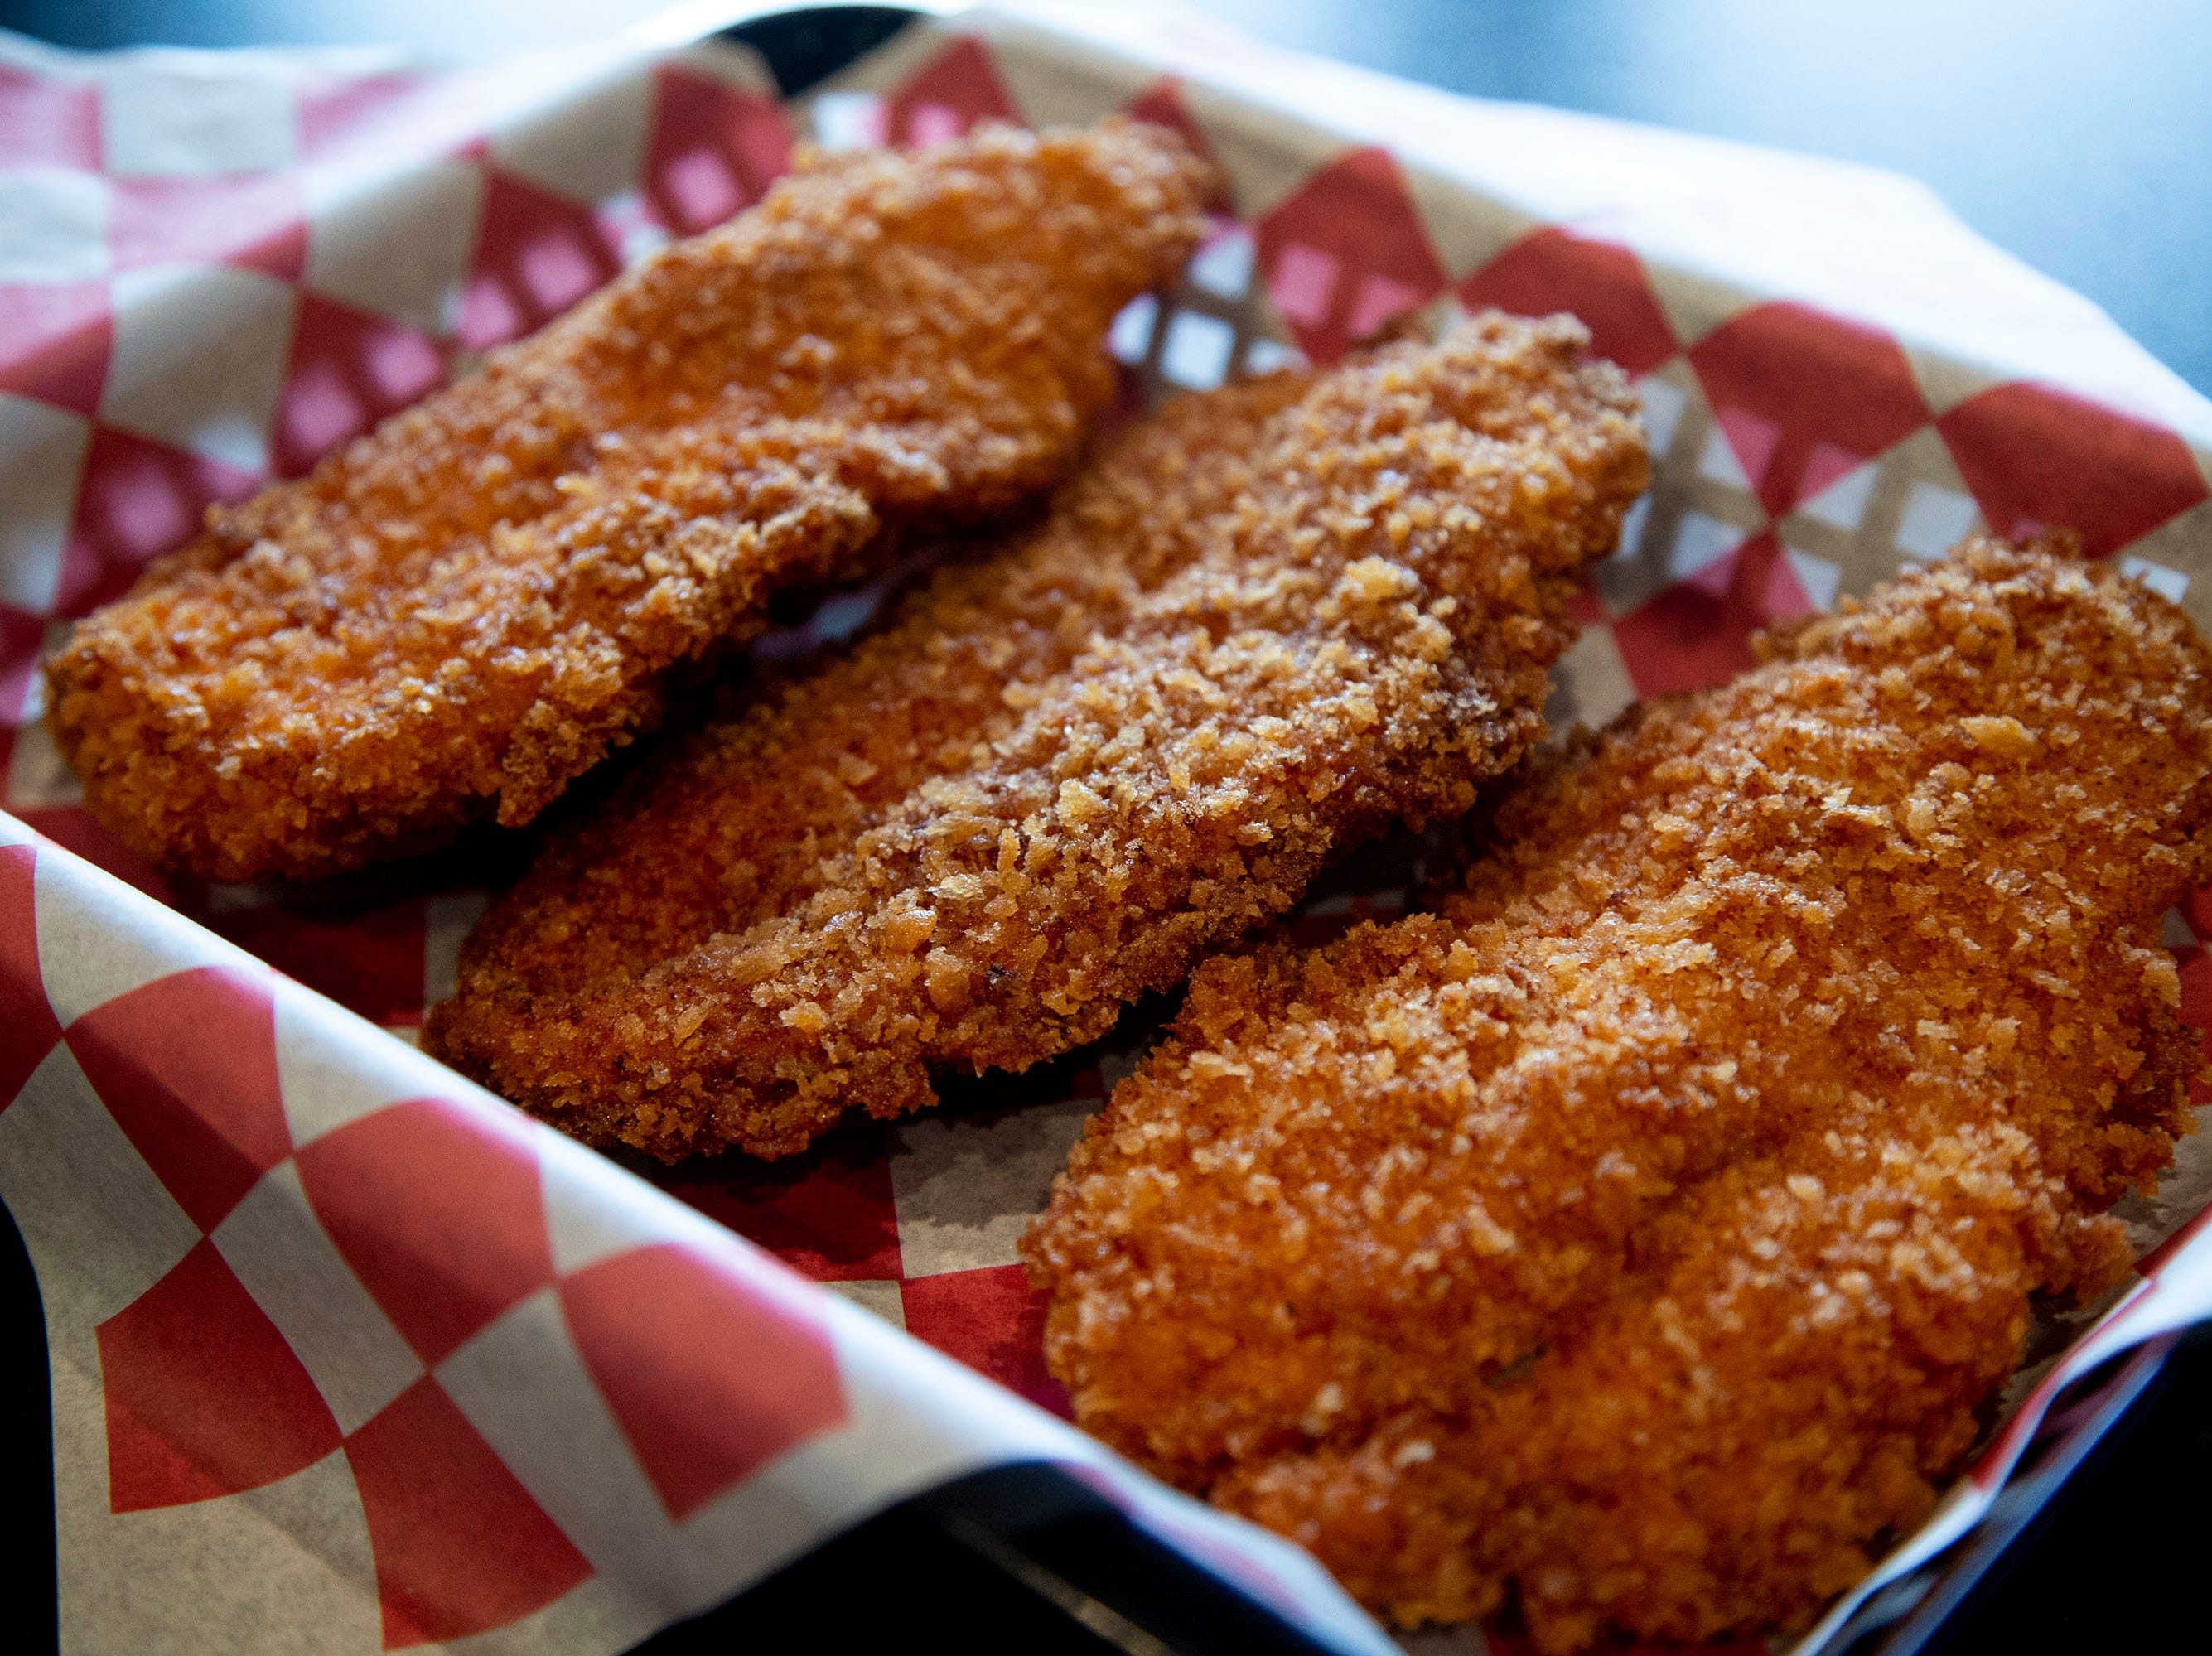 Rolling Smoke Barbeque's chicken strip platter with hand-breaded chicken tenders on Wednesday, April 10, 2019, in Pleasant Hill.